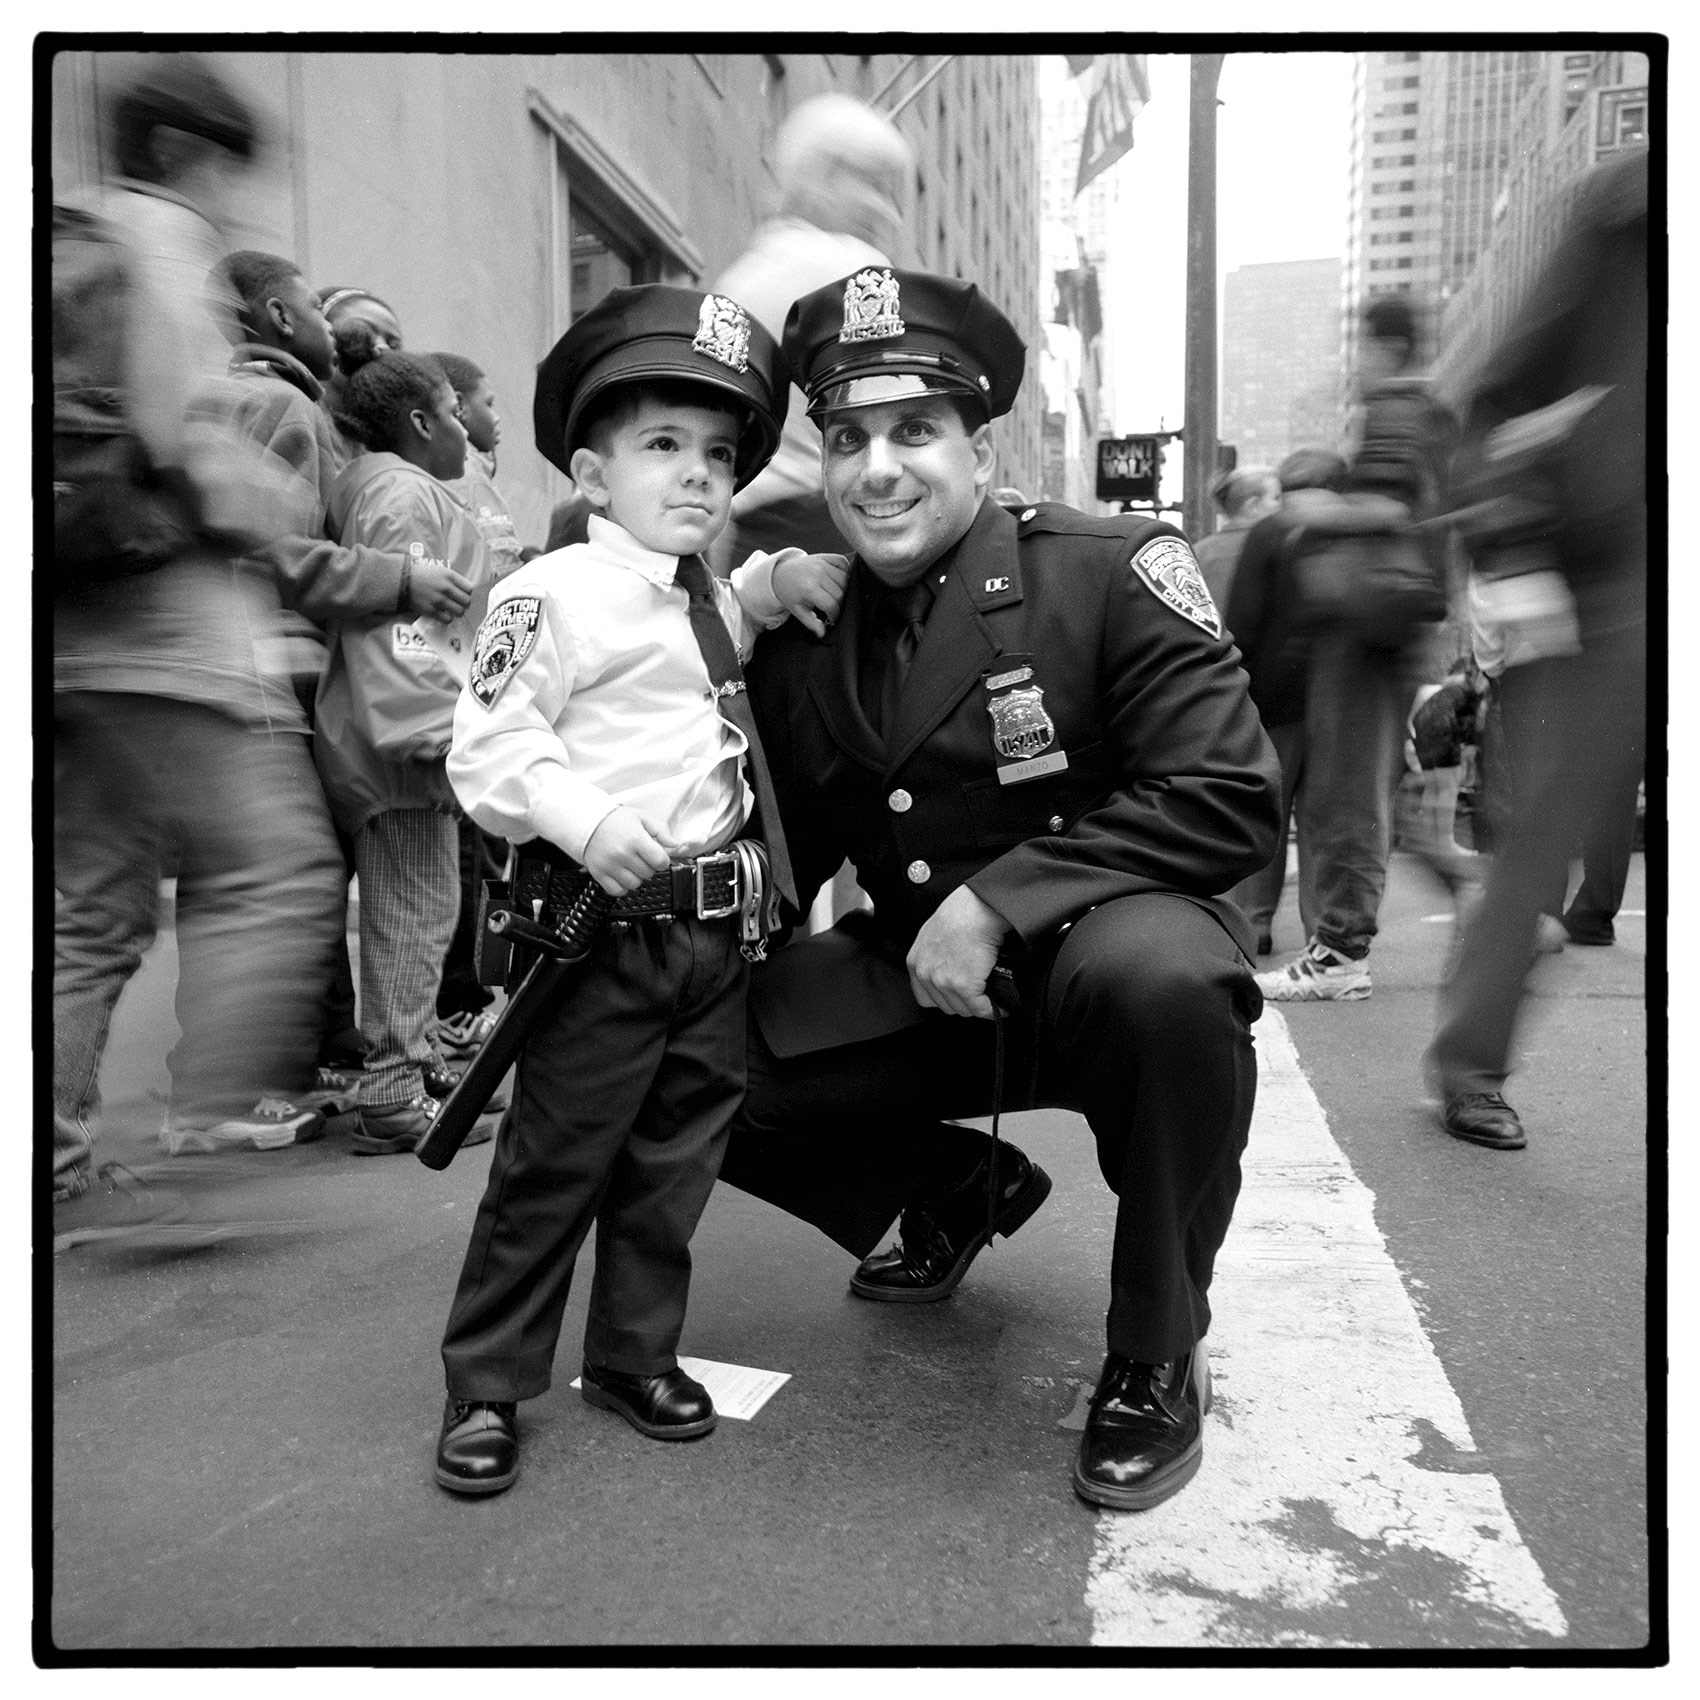 an-nypd-policeman-and-his-son-dressed-as-an-officer-on-the-streets-of-new-york